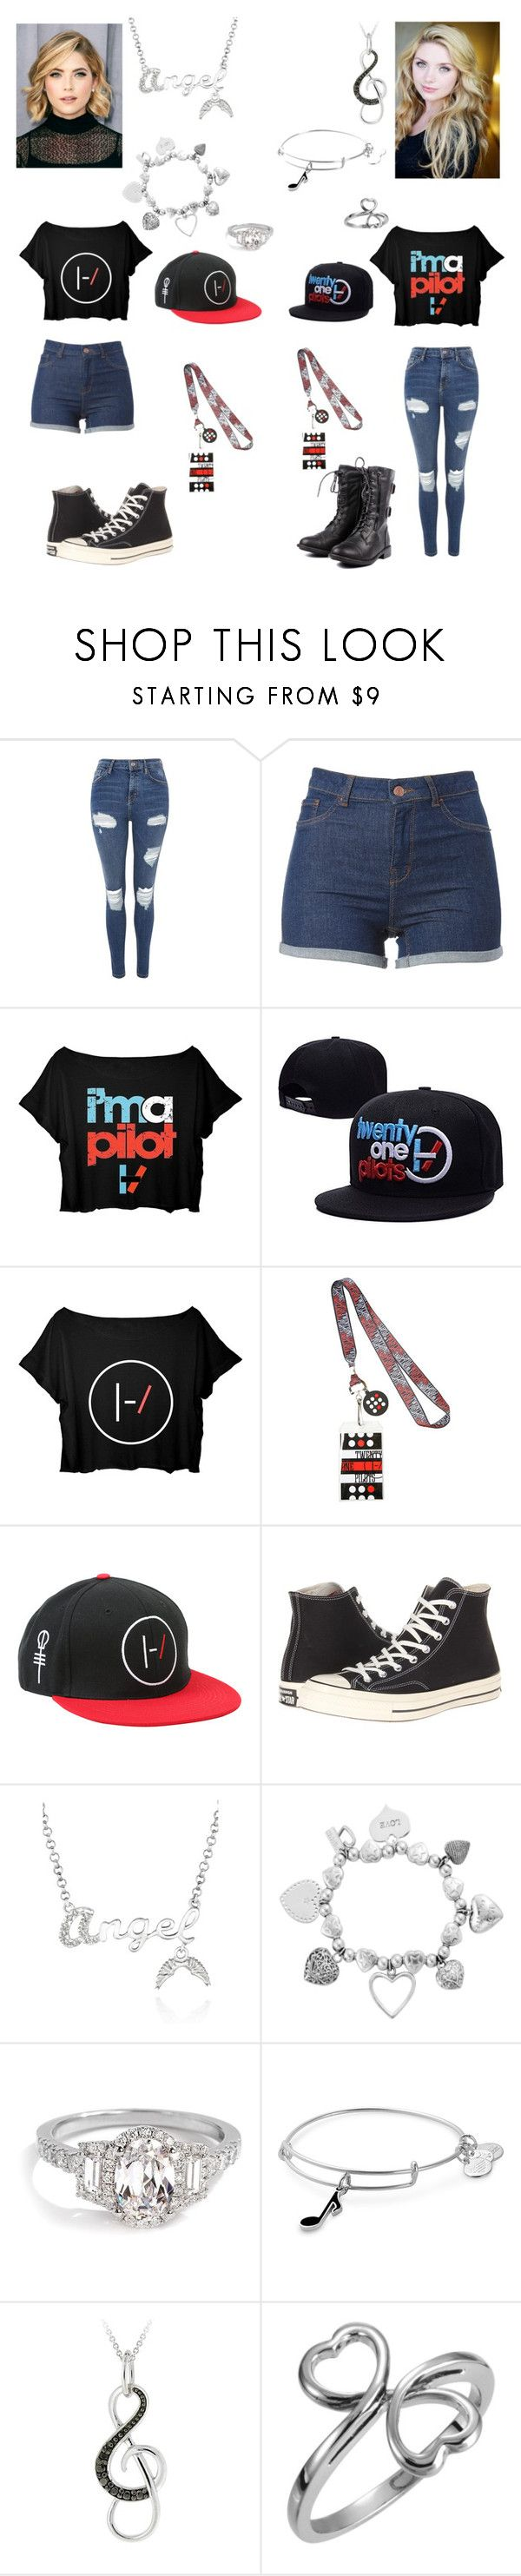 """😇Nevaeh😇 Harmony & Nevaeh going to a Twenty One Pilots concert"" by rroyalserena ❤ liked on Polyvore featuring Topshop, Hot Topic, Converse, Belk & Co., ChloBo, Alex and Ani, DB Designs and nevaehqueen"